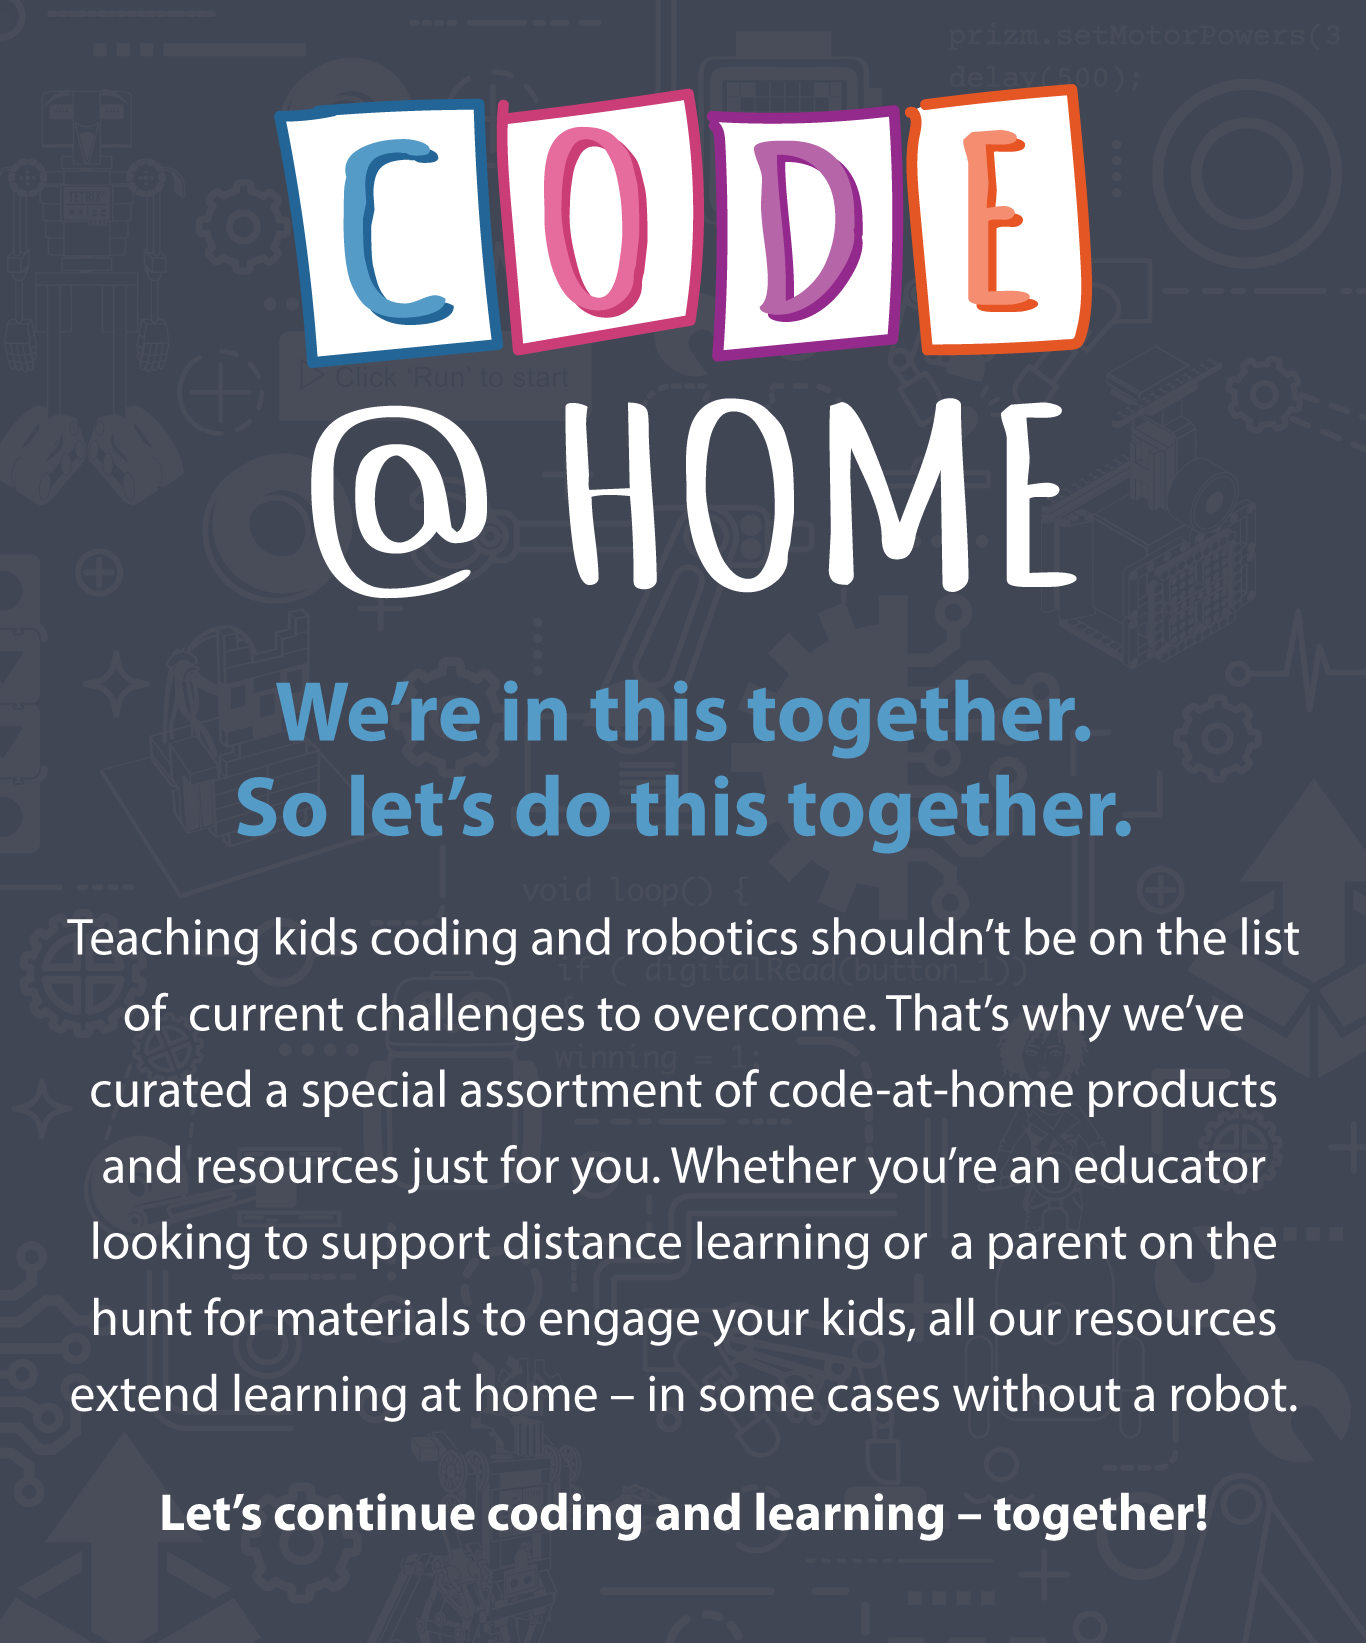 CODE @ HOME – We're in this together. So let's do this together. Teaching kids coding and robotics shouldn't be on the list of  current challenges to overcome. That's why we've curated a special assortment of code-at-home products and resources just for you. Whether you're an educator looking to support distance learning or  a parent on the hunt for materials to engage your kids, all our resources extend learning at home – in some cases without a robot. Let's continue coding and learning – together!